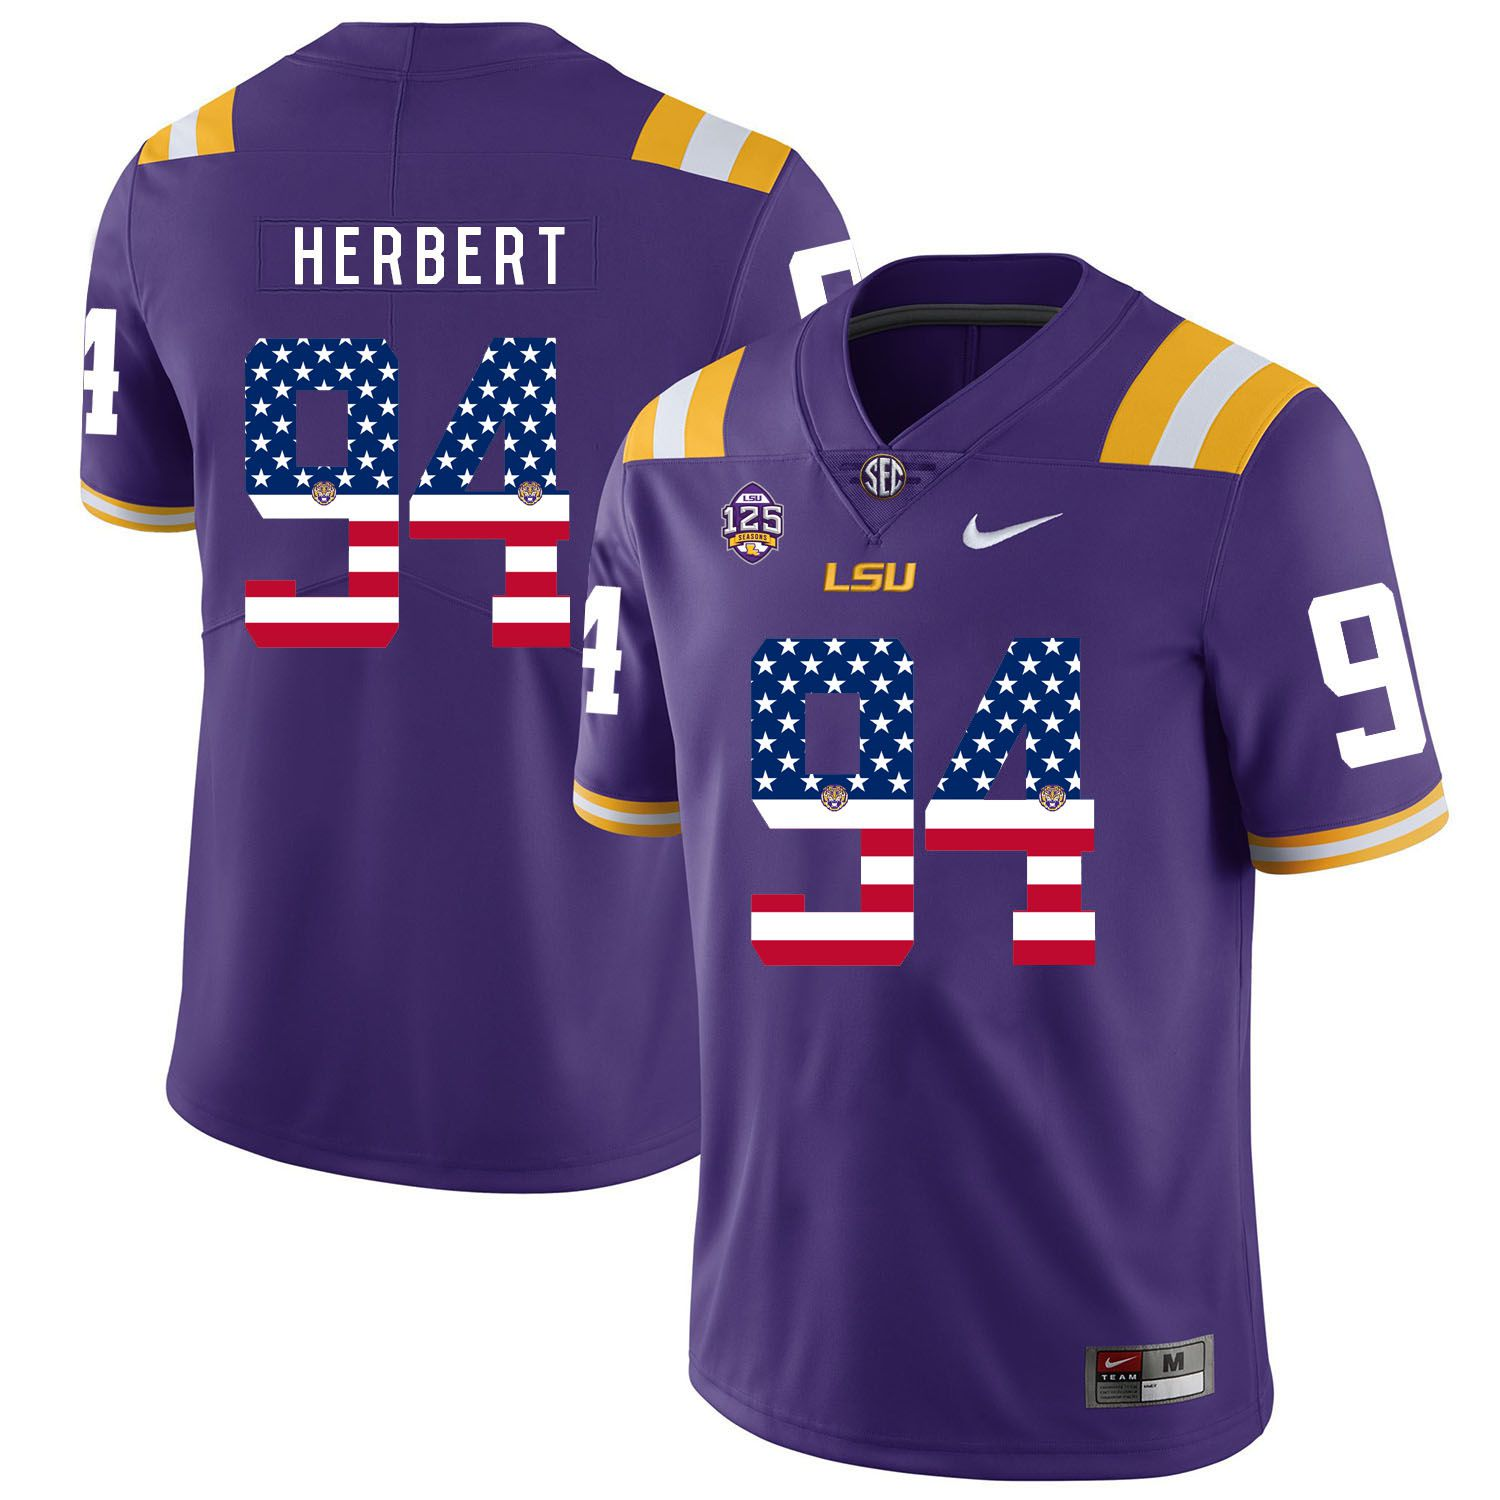 Men LSU Tigers 94 Herbert Purple Flag Customized NCAA Jerseys